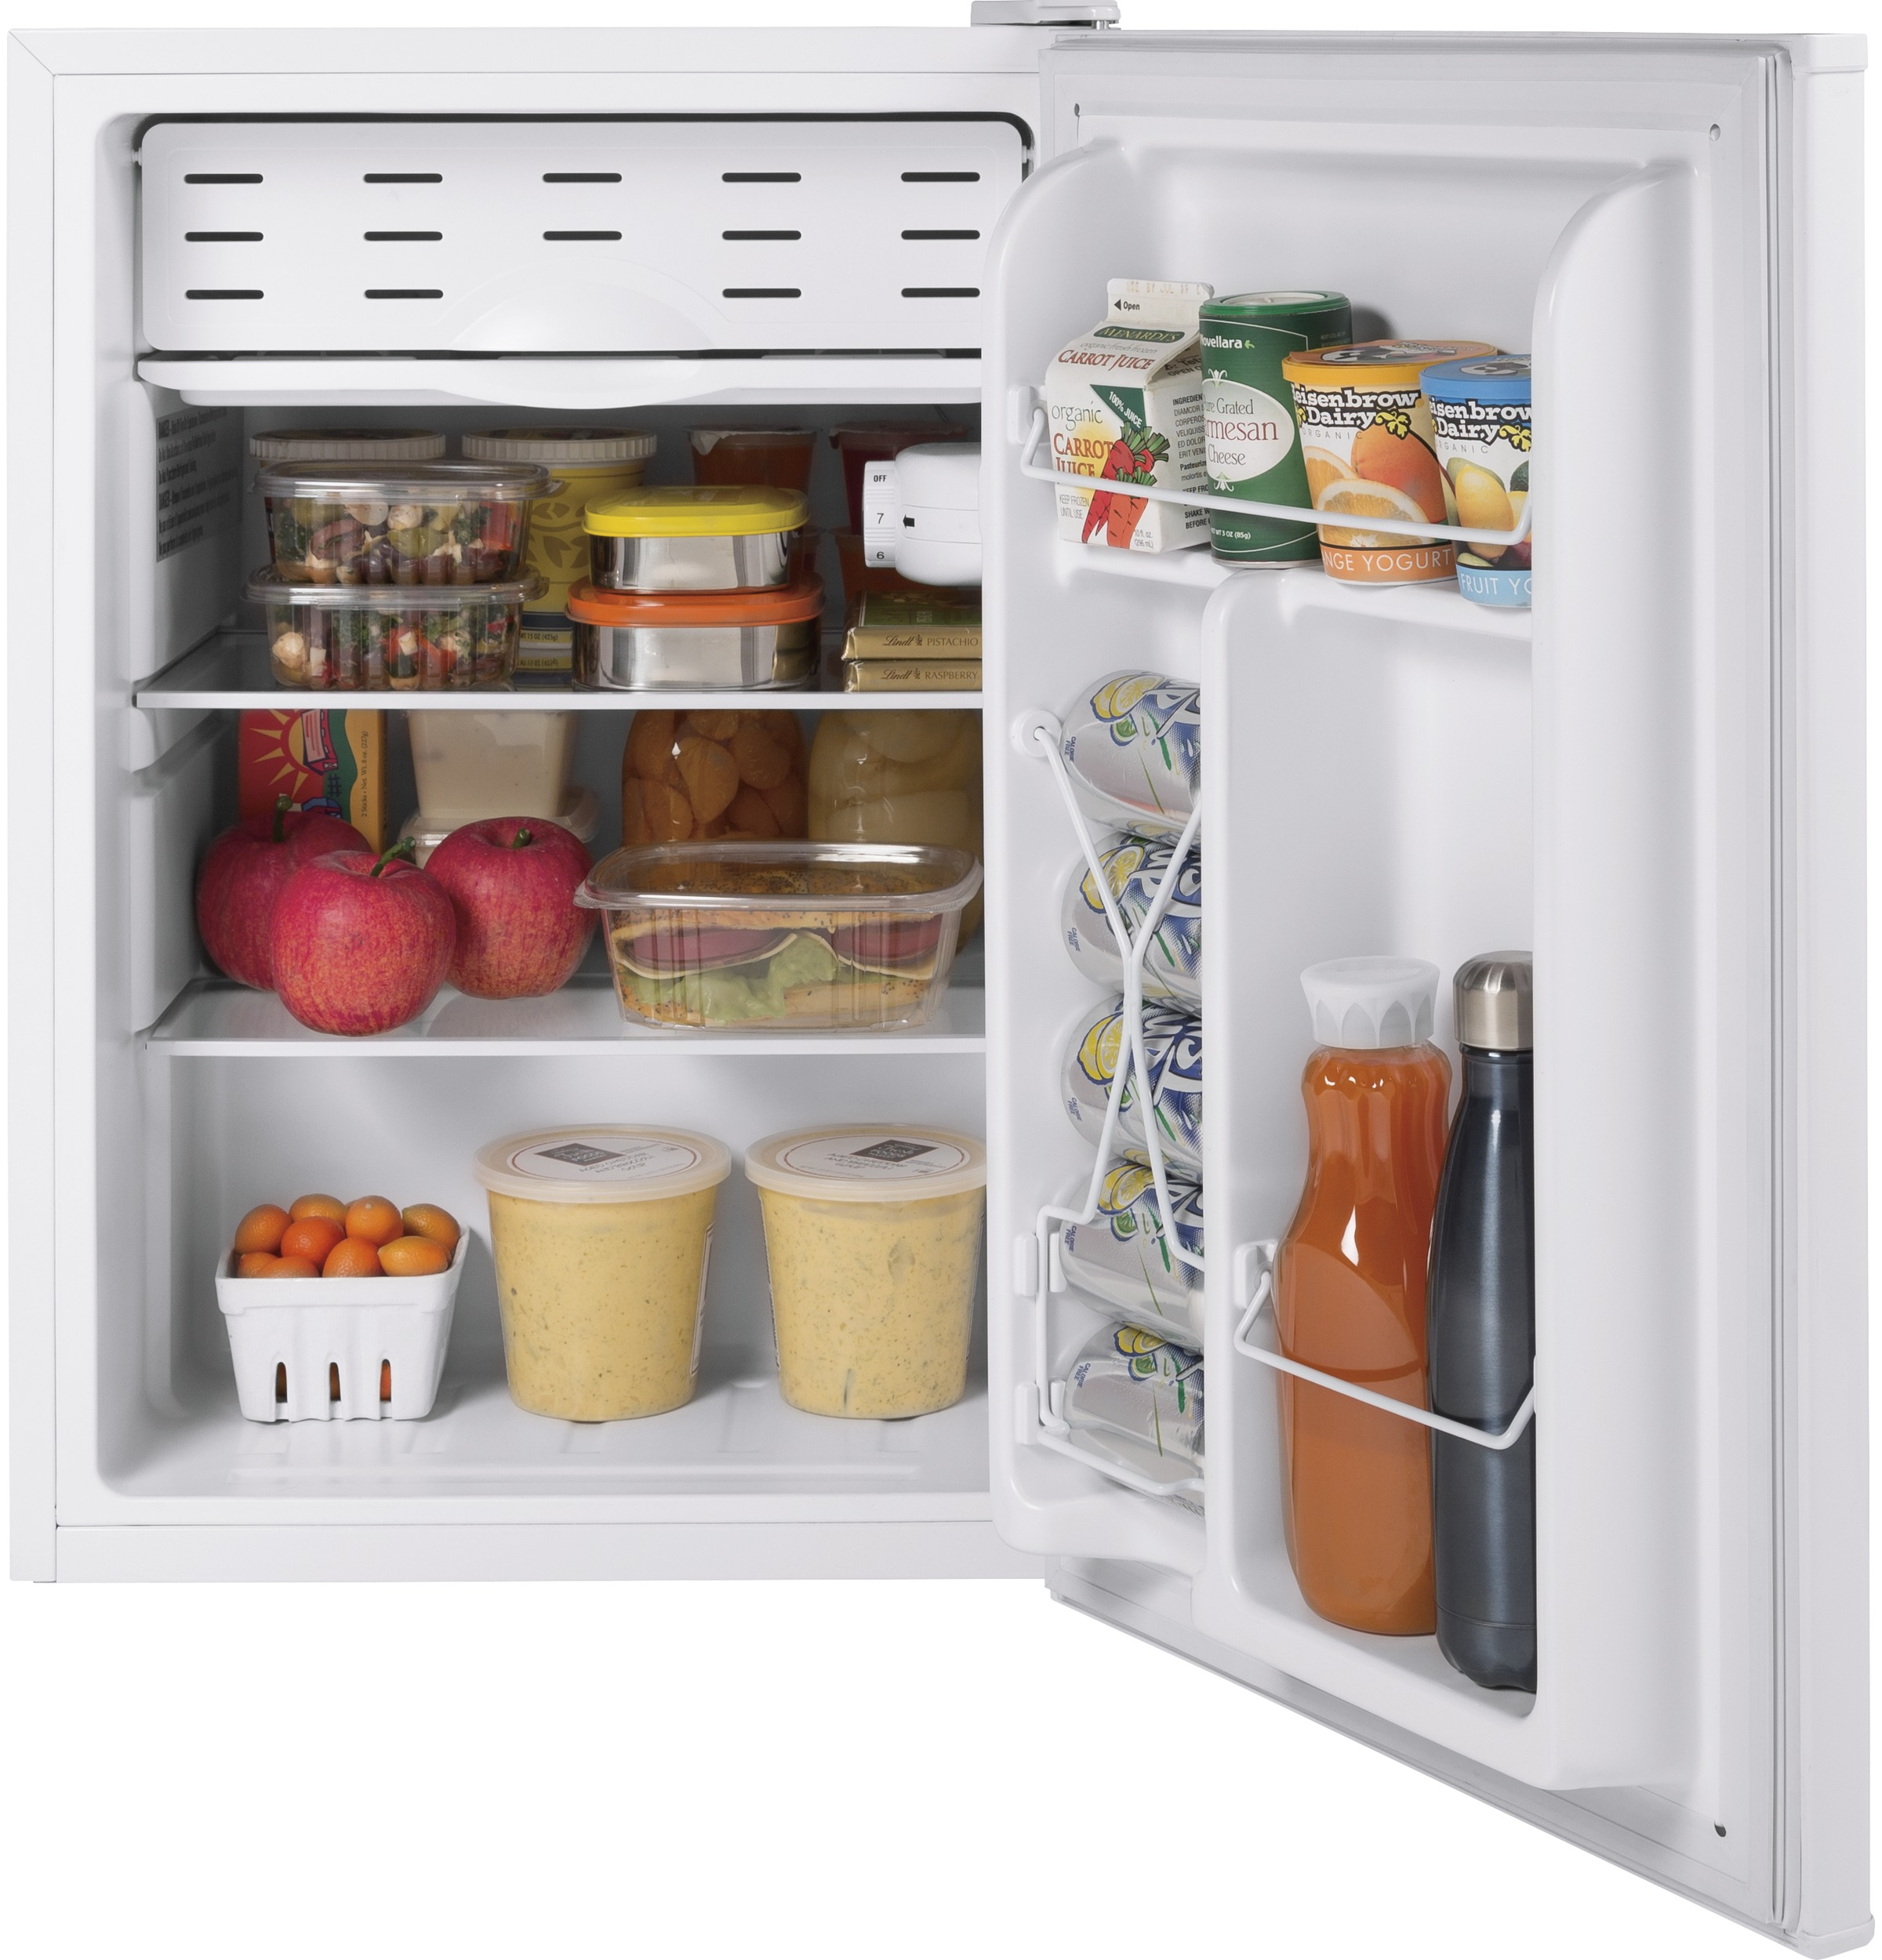 Model: HME03GGMWW | Hotpoint® 2.7 cu. ft. ENERGY STAR® Qualified Compact Refrigerator